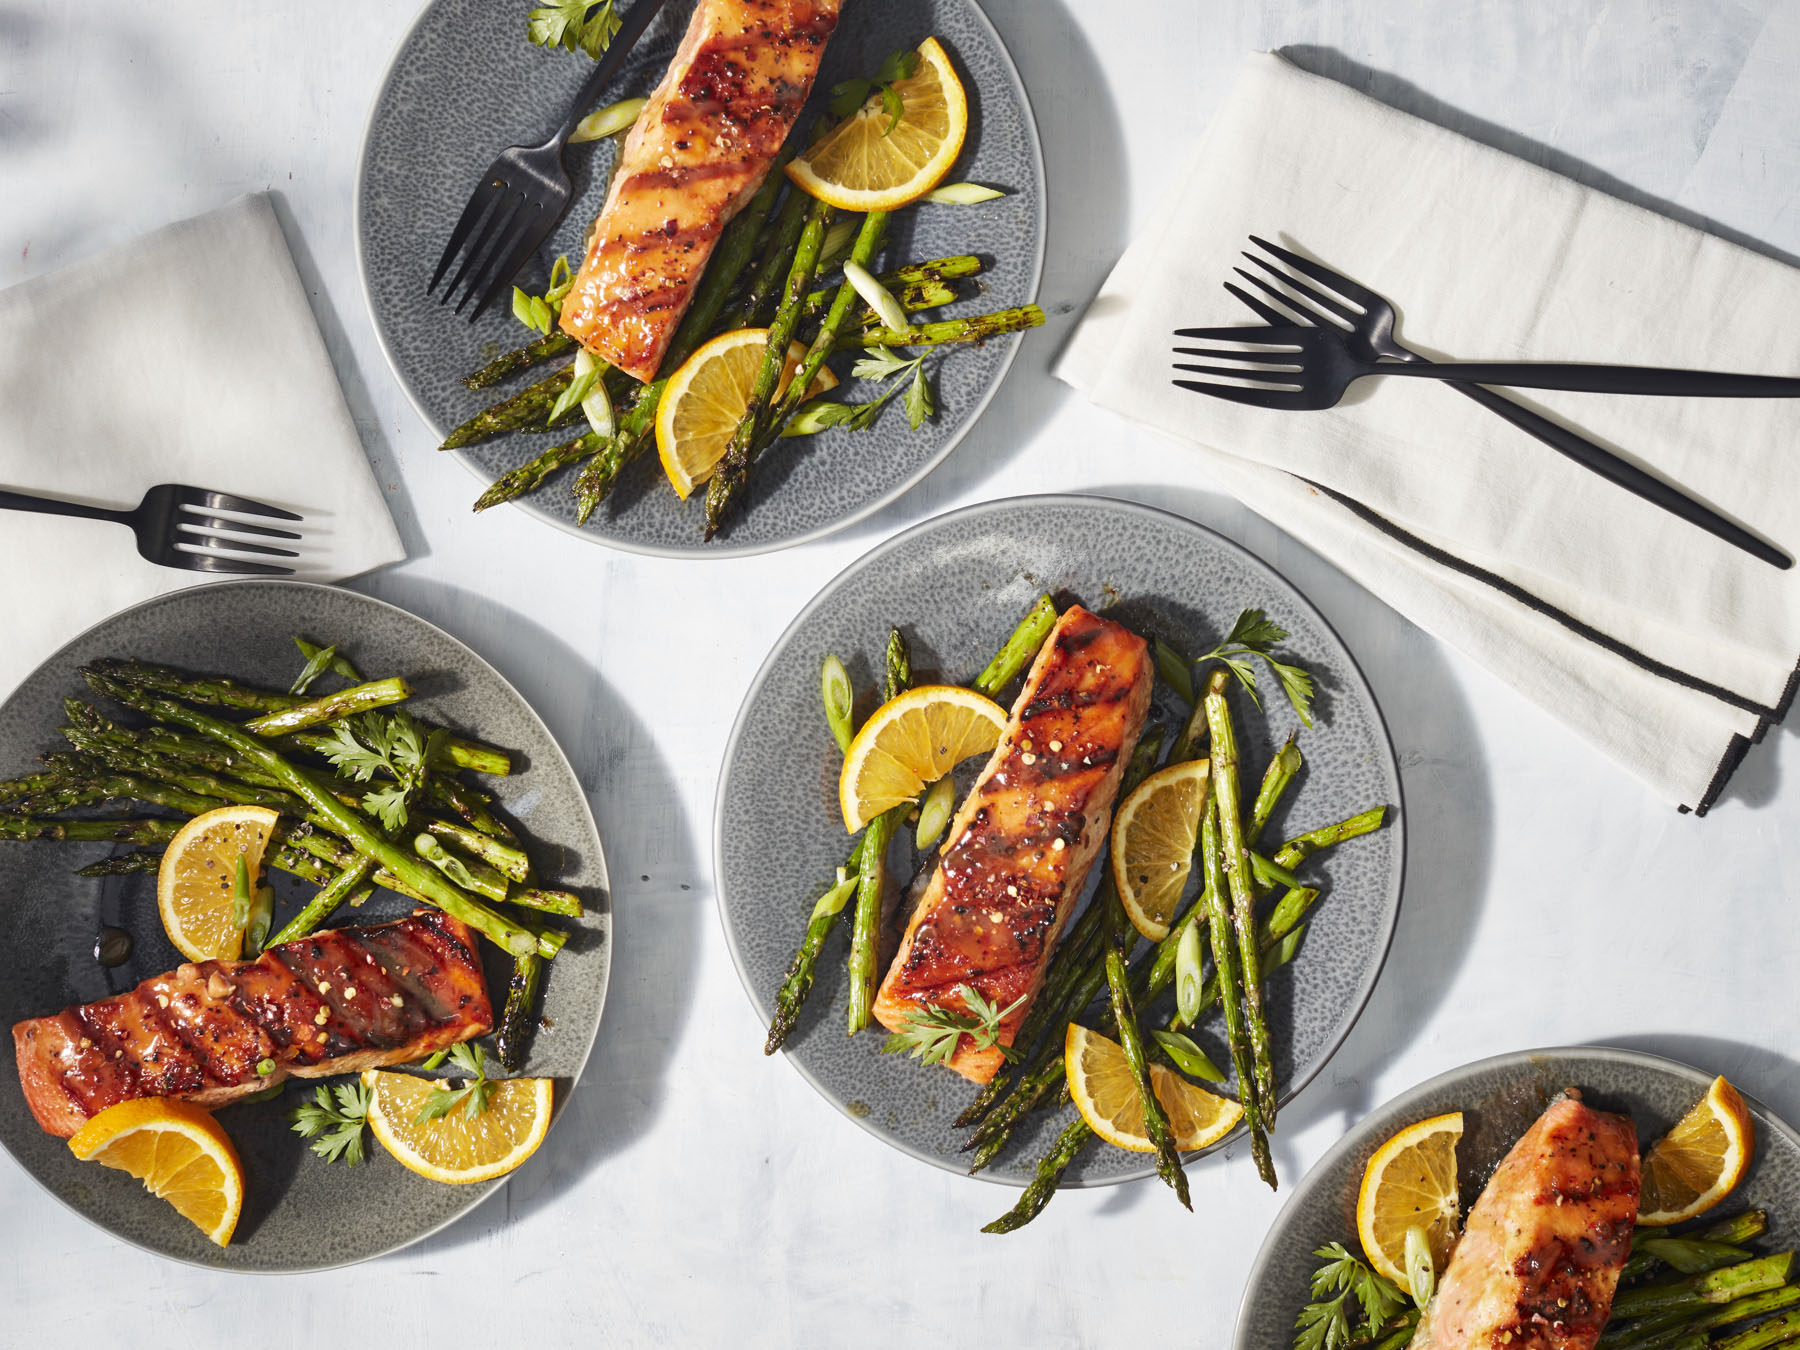 Grilled Salmon with Orange-Soy Glaze